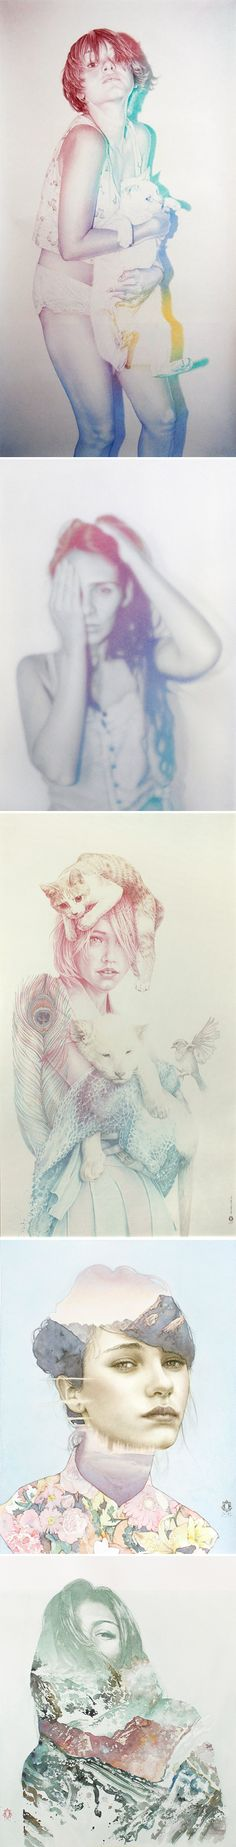 oriol angrill jorda - drawings with colored pencil!!